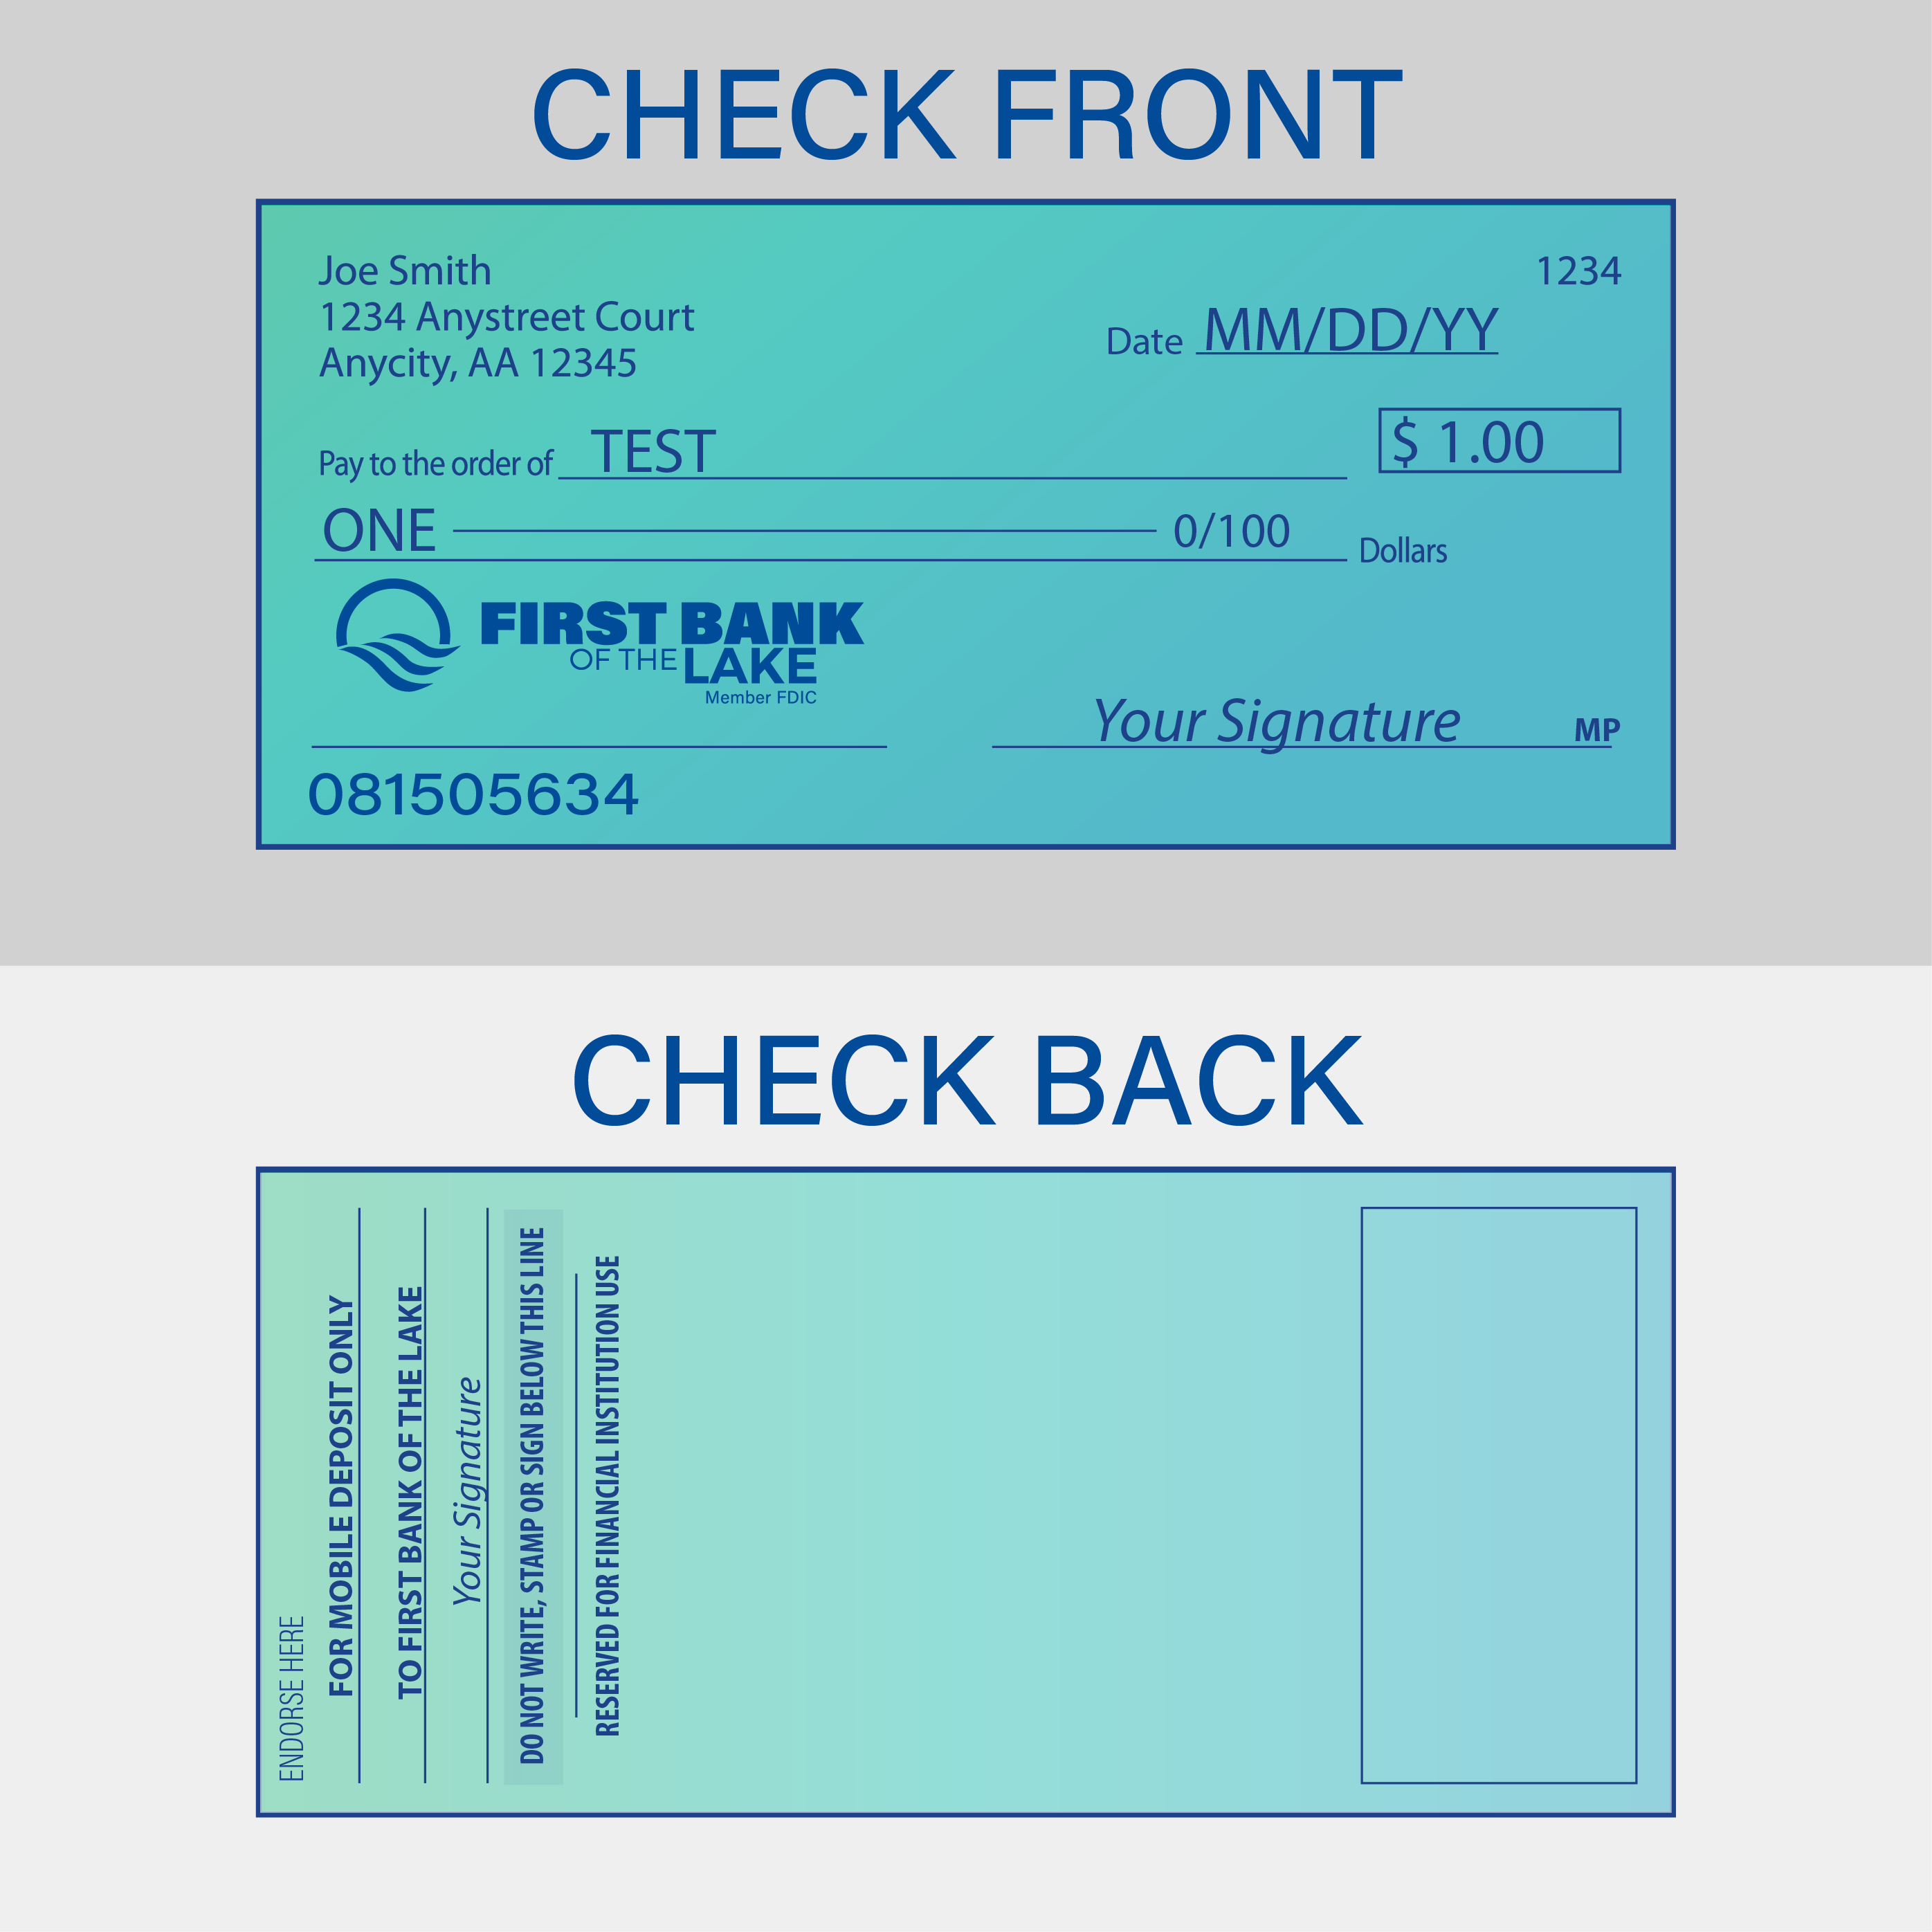 Mobile Deposit graphic of the front and back of a check.